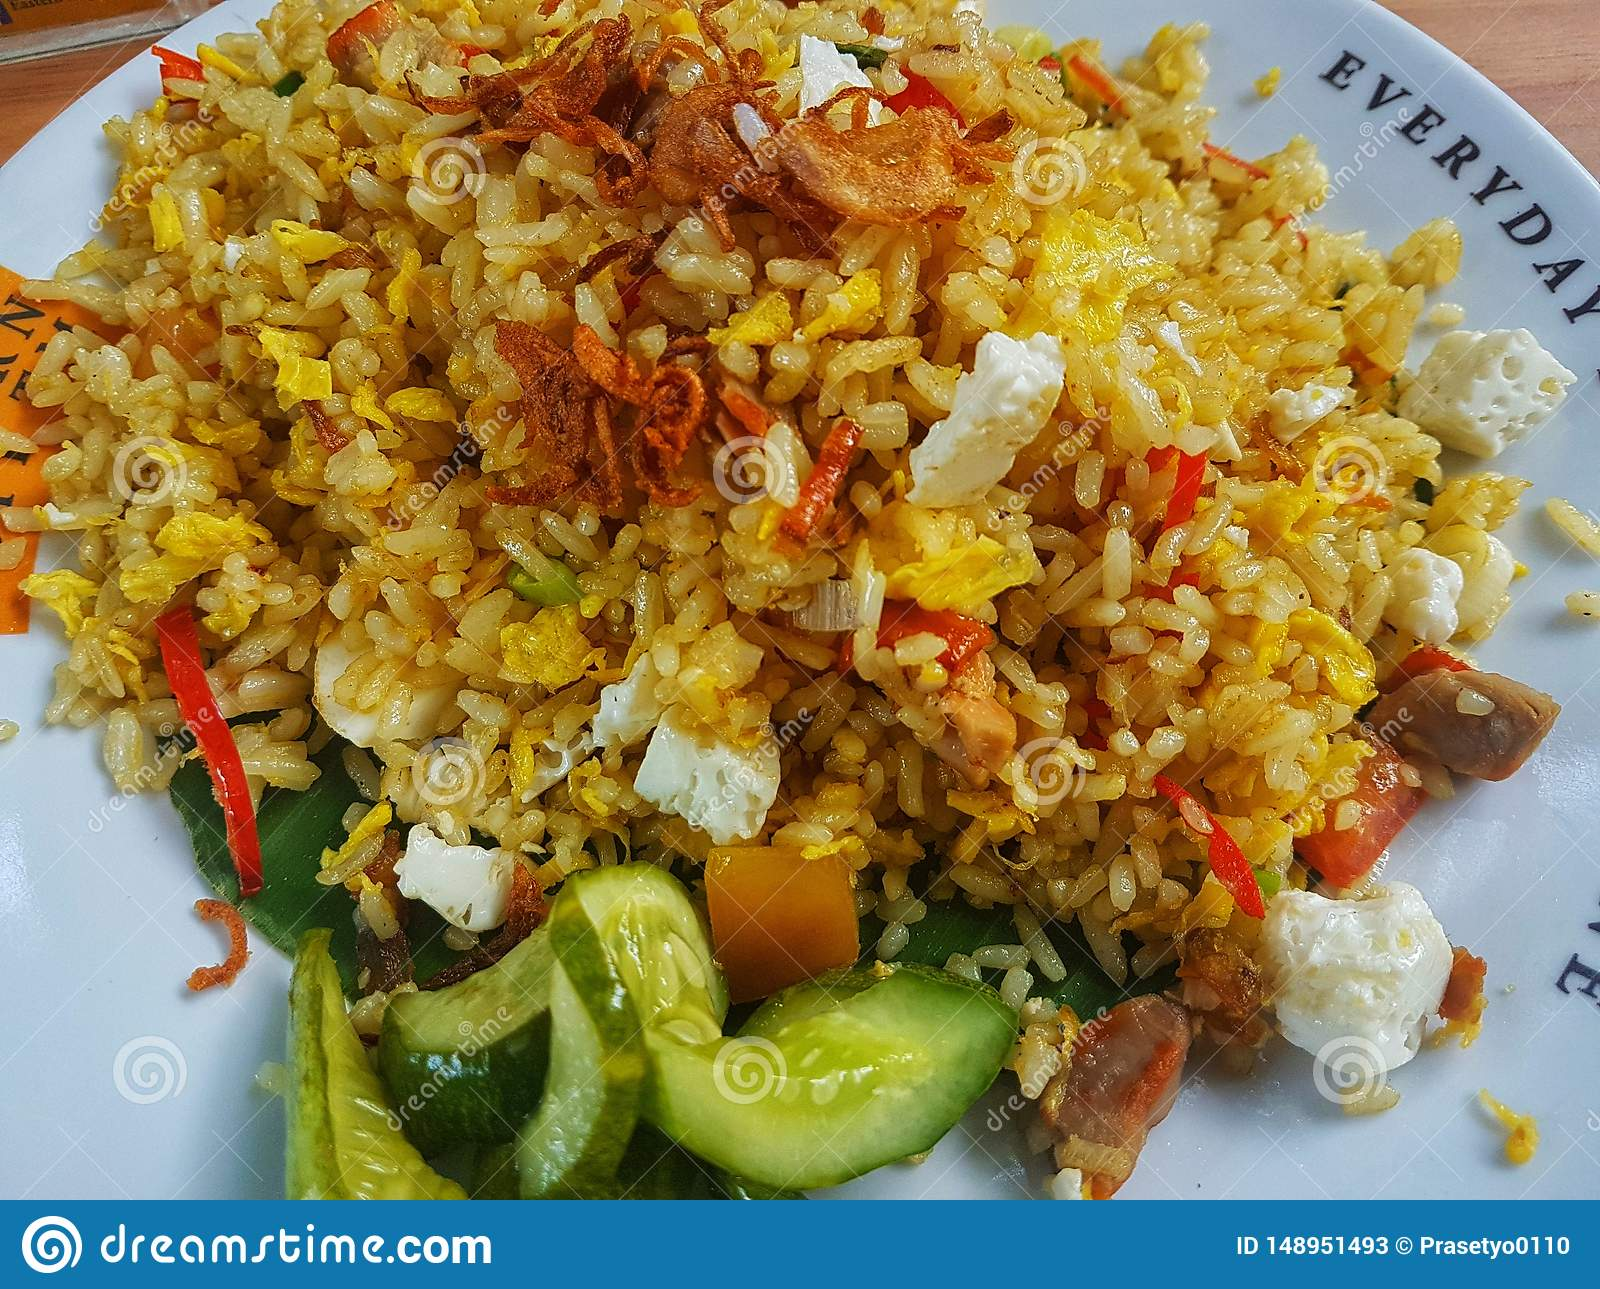 Brown fried rice with with chili,cucumber and fried onion in the white plate on the wooden table. Top view close up details.